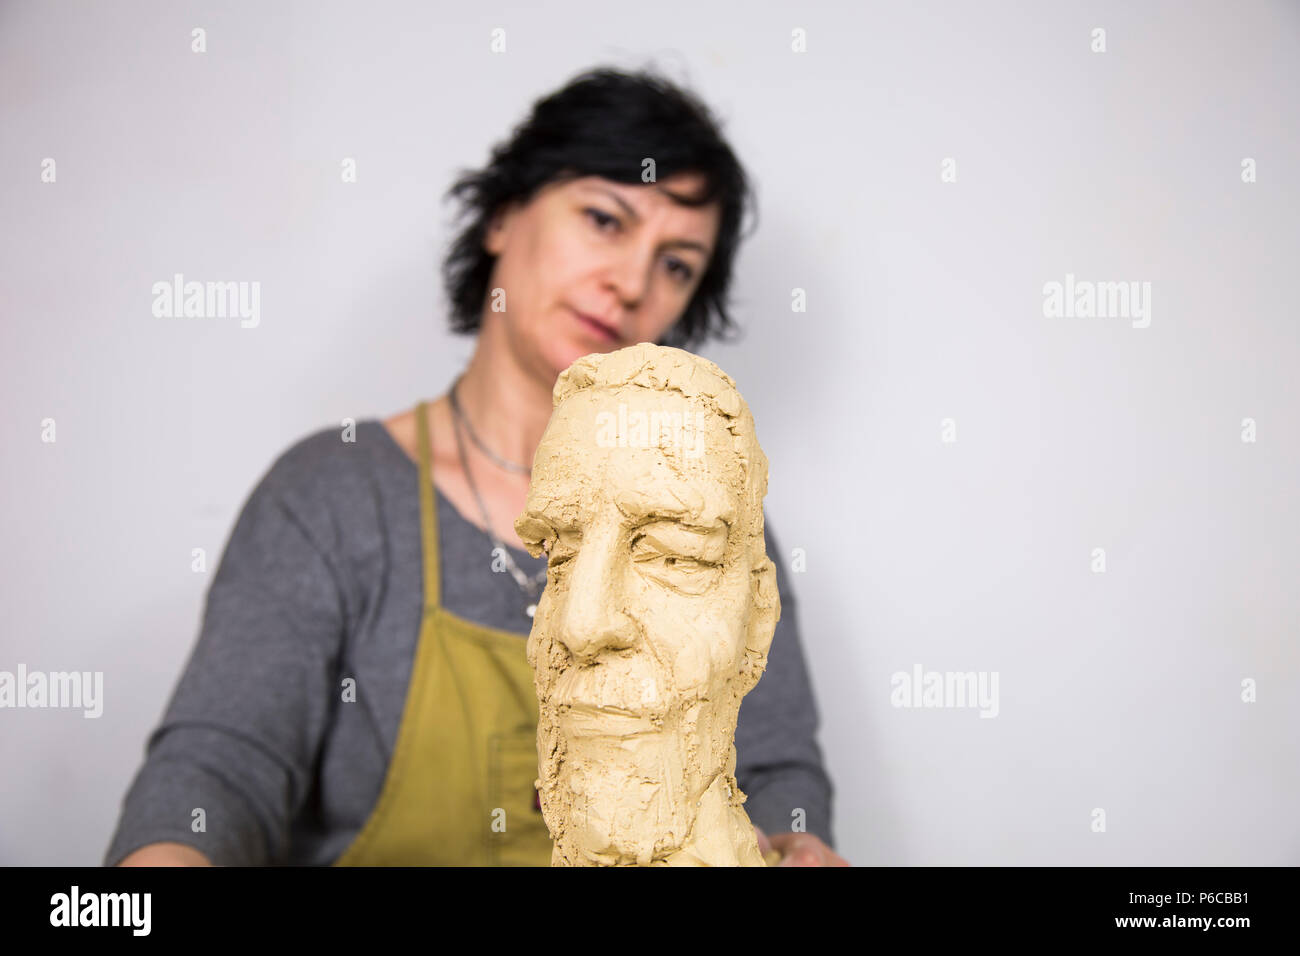 Sculptor artist creating a bust sculpture with clay. She is happy of her work, she is concentrated, she is sculpting a woman. - Stock Image